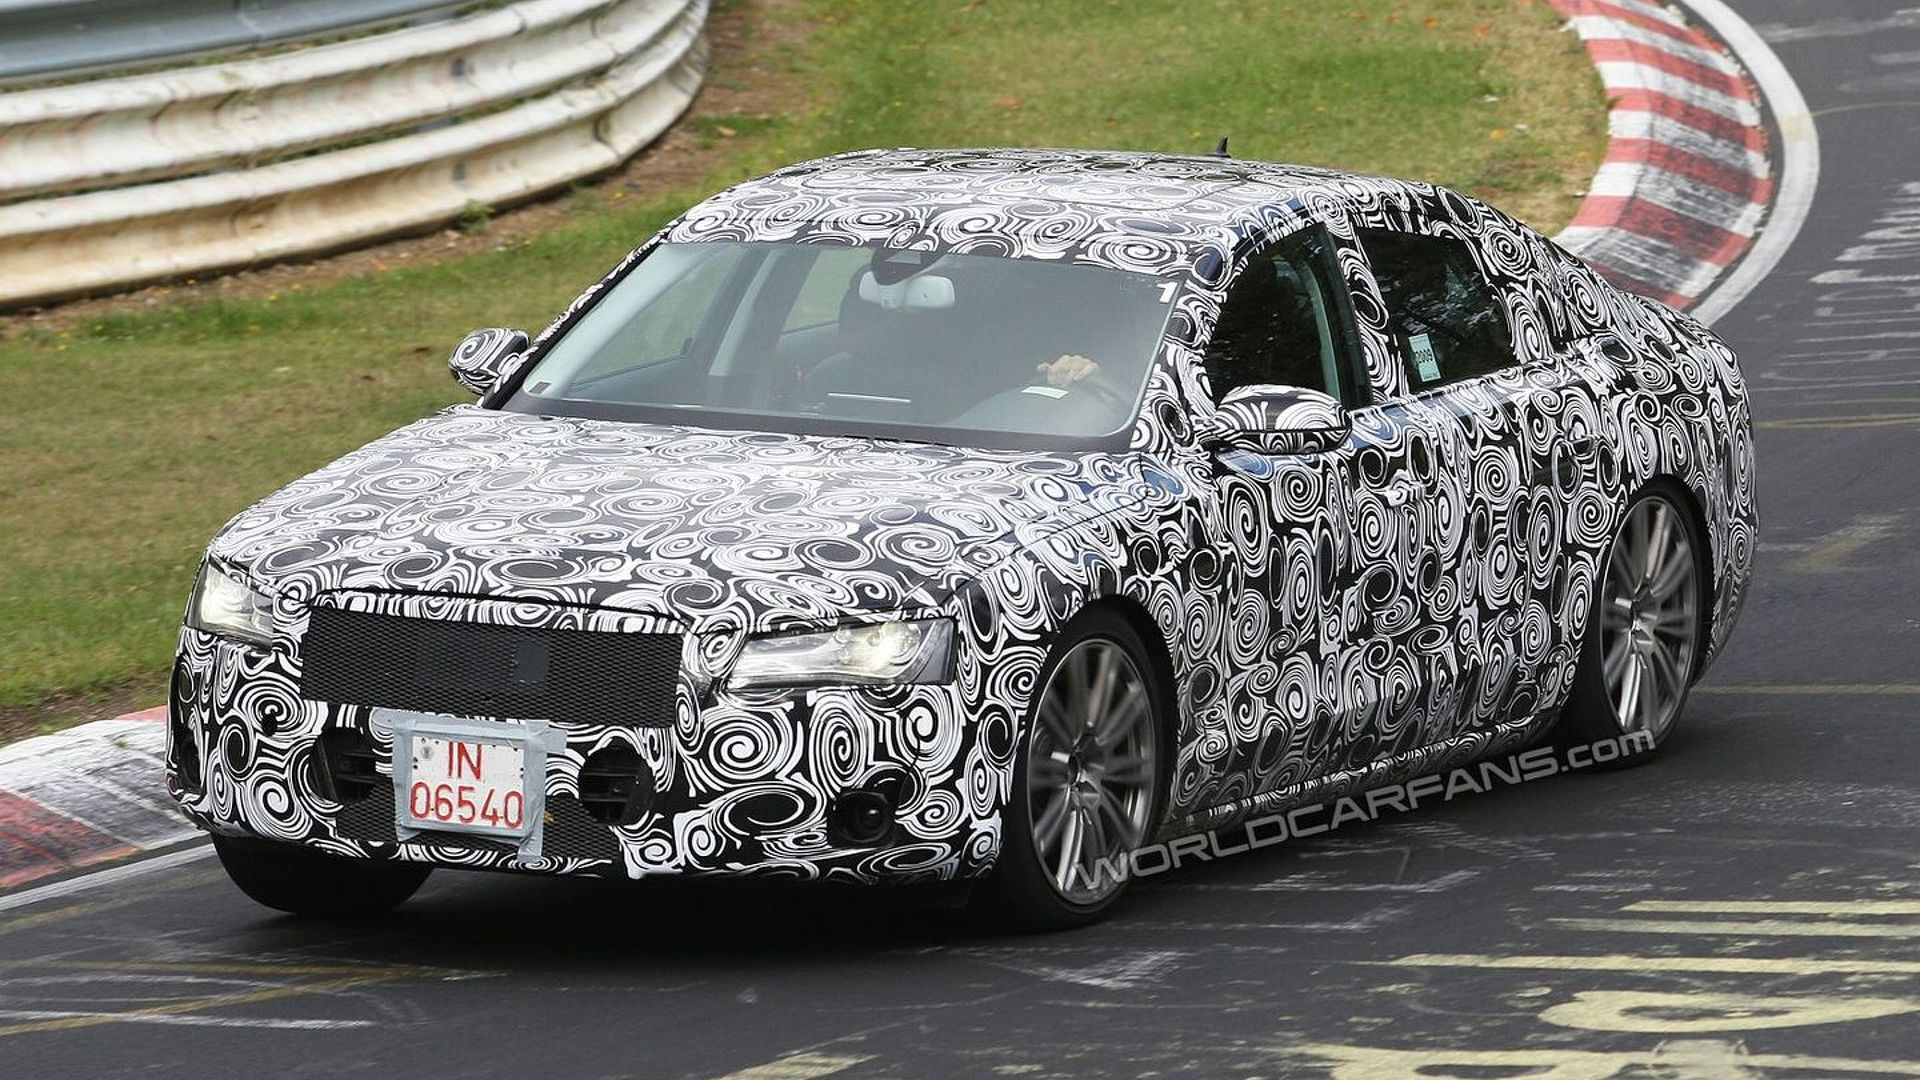 2011 Audi A8 Spied: New details Surface